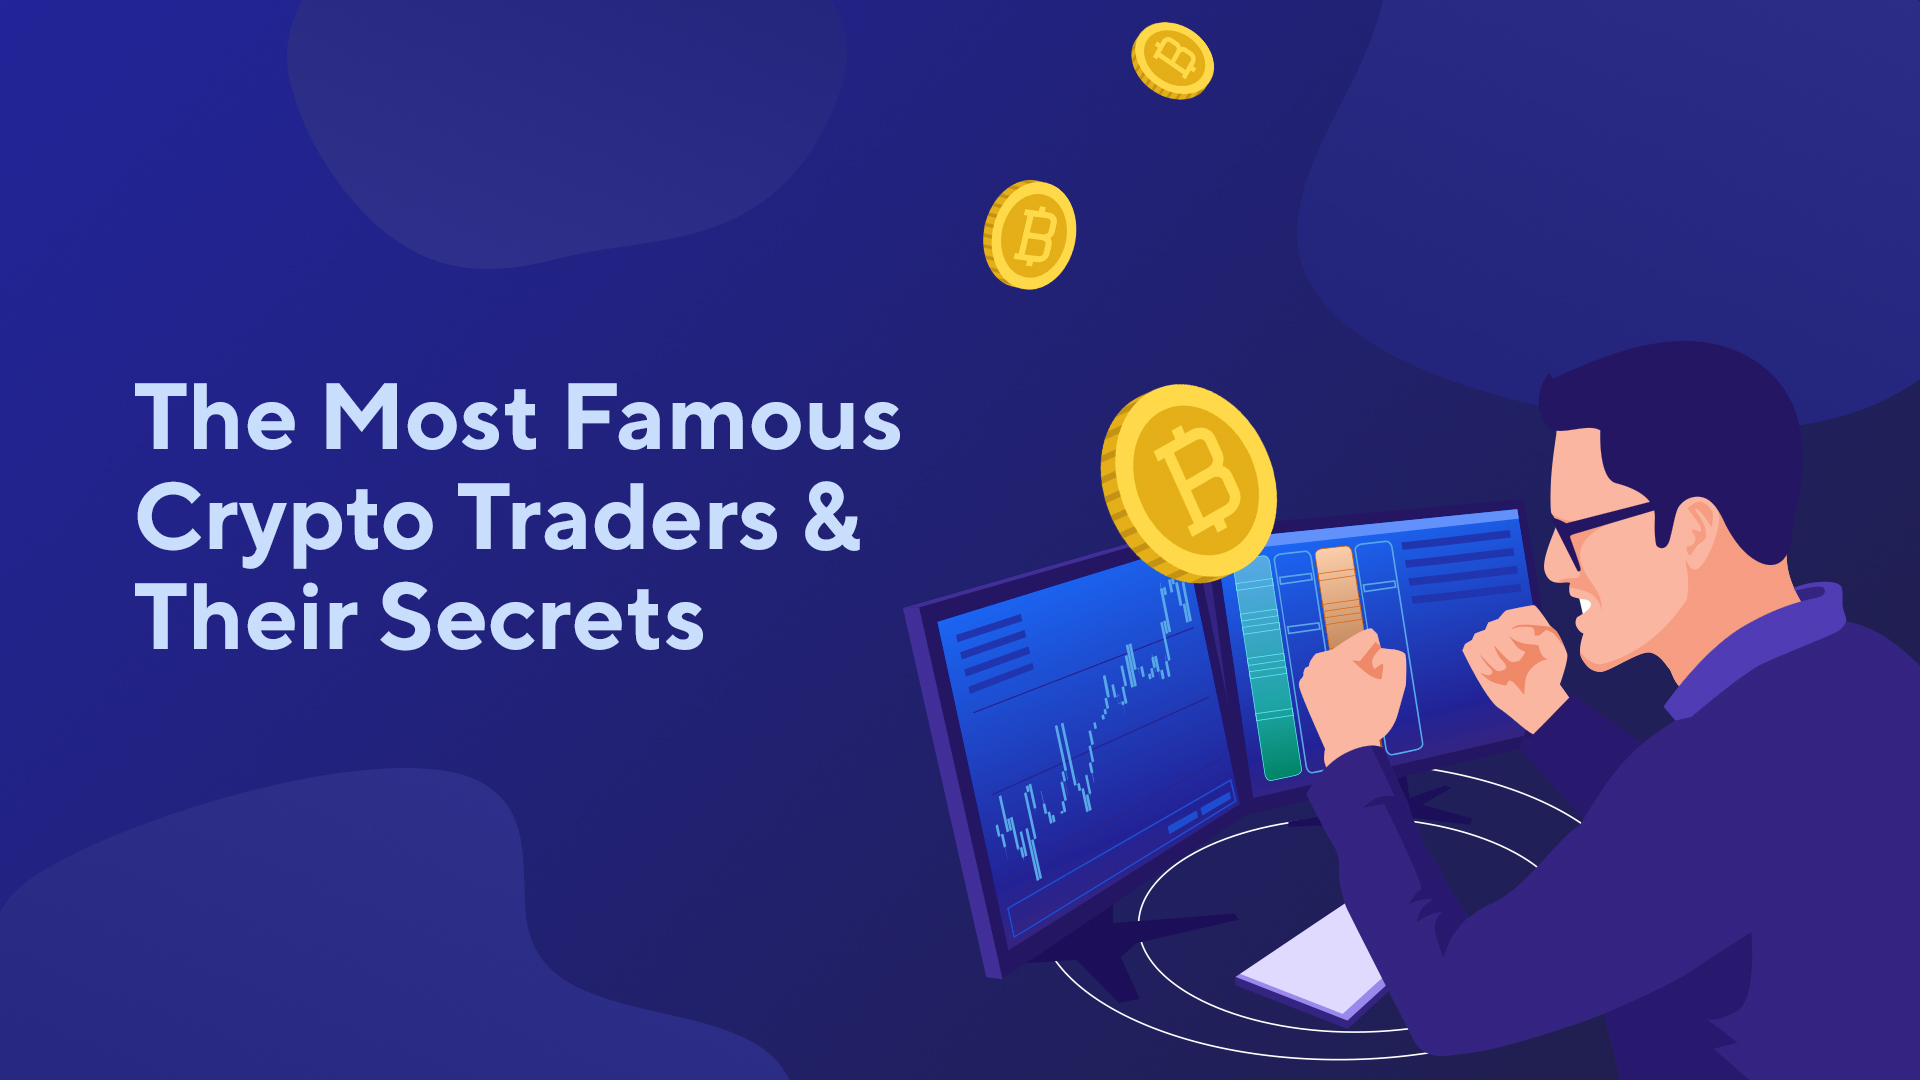 The Most Famous Crypto Traders & Their Secrets